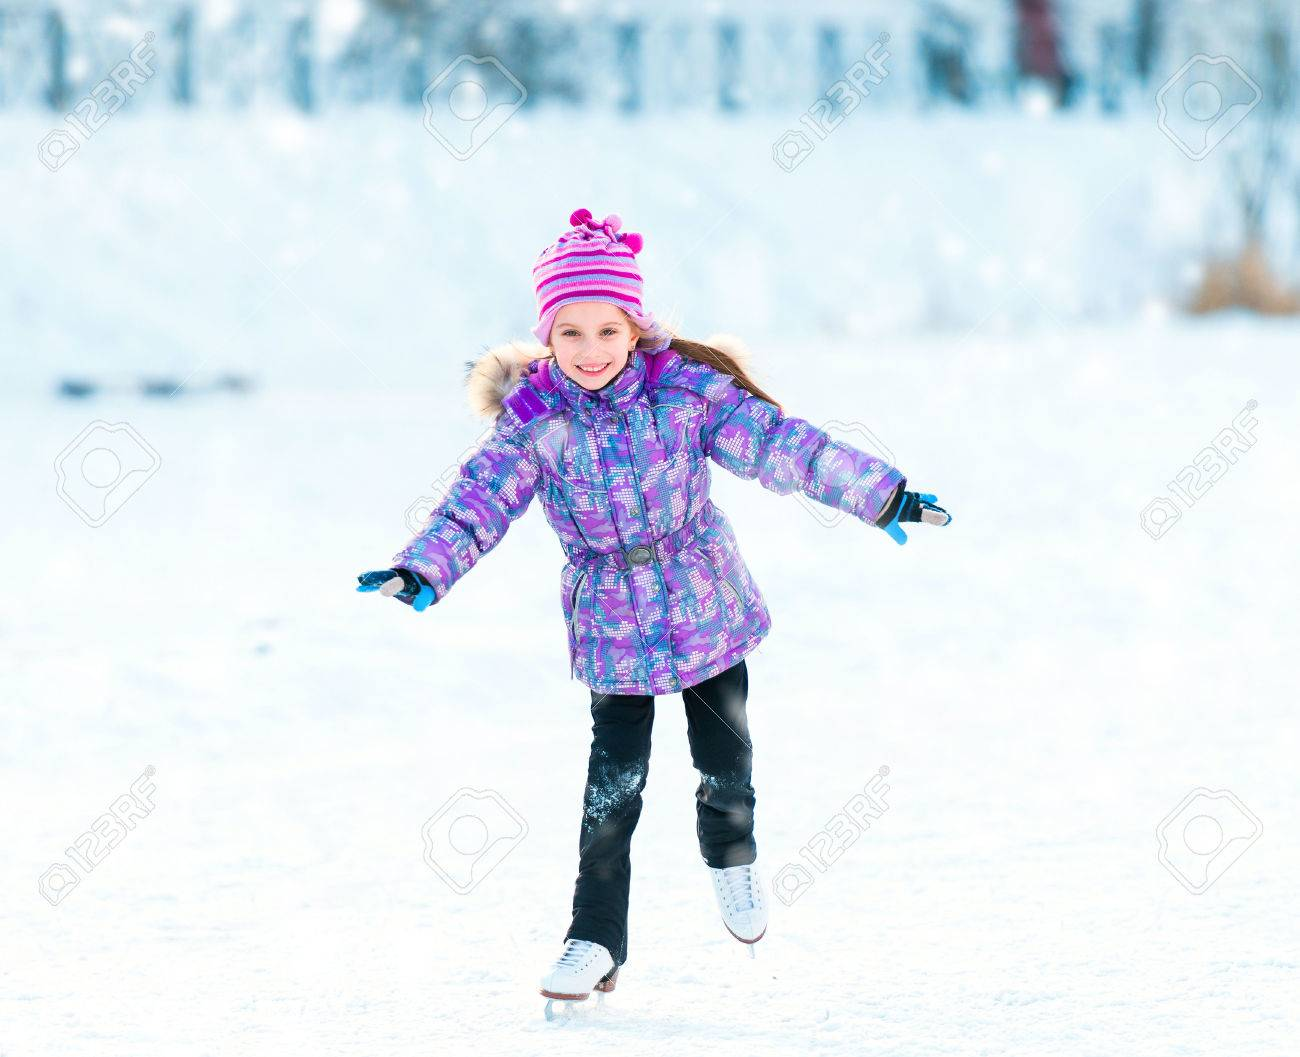 Happy little girl skating in winter outdoors - 32218926